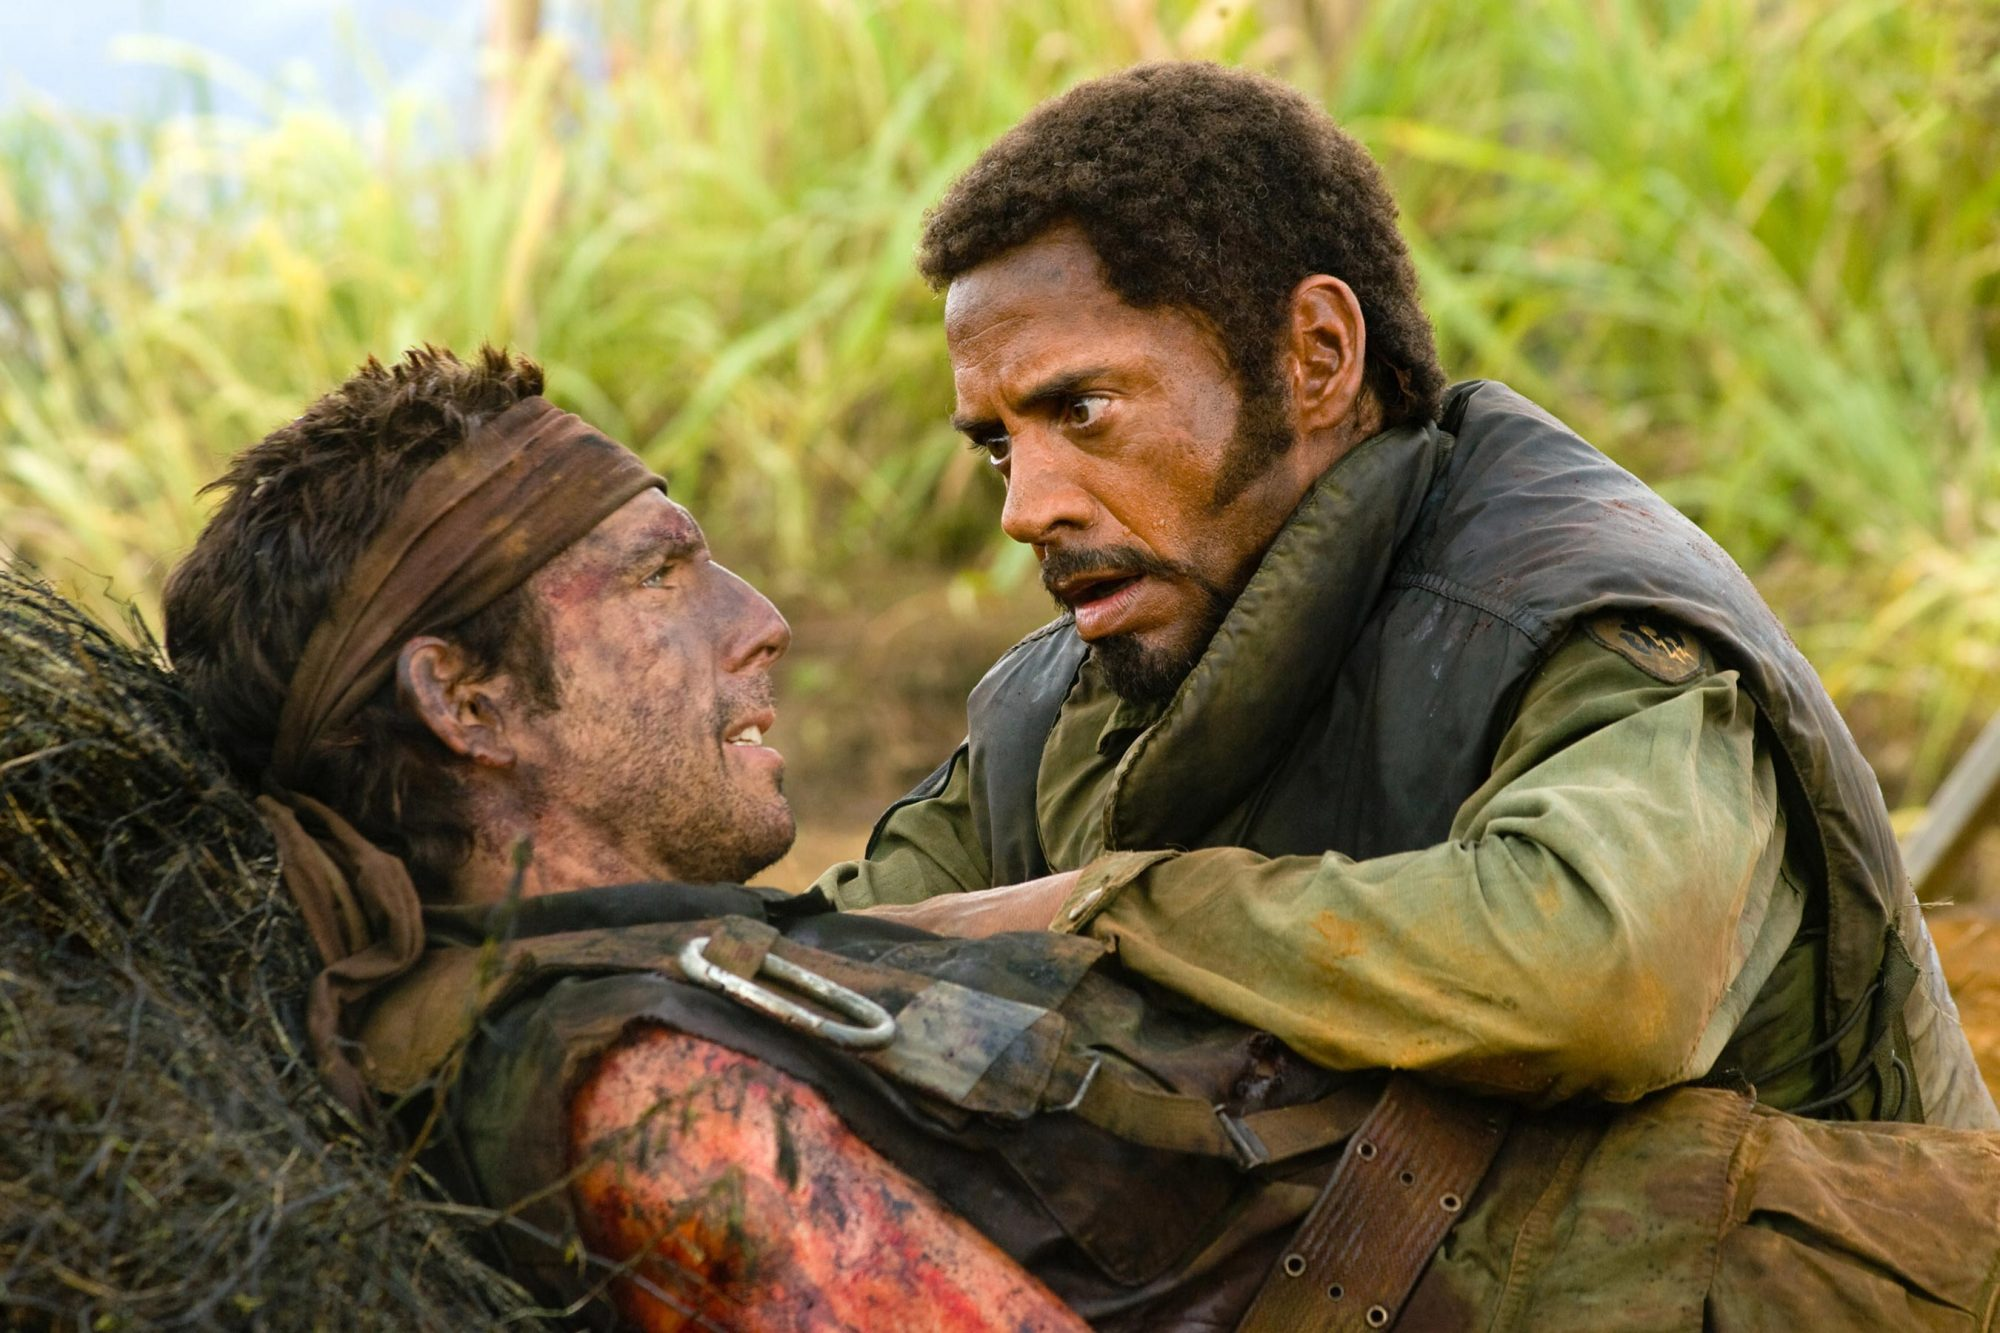 TROPIC THUNDER, from left: Ben Stiller, Robert Downey Jr., 2008. ©DreamWorks Distribution/Courtesy E